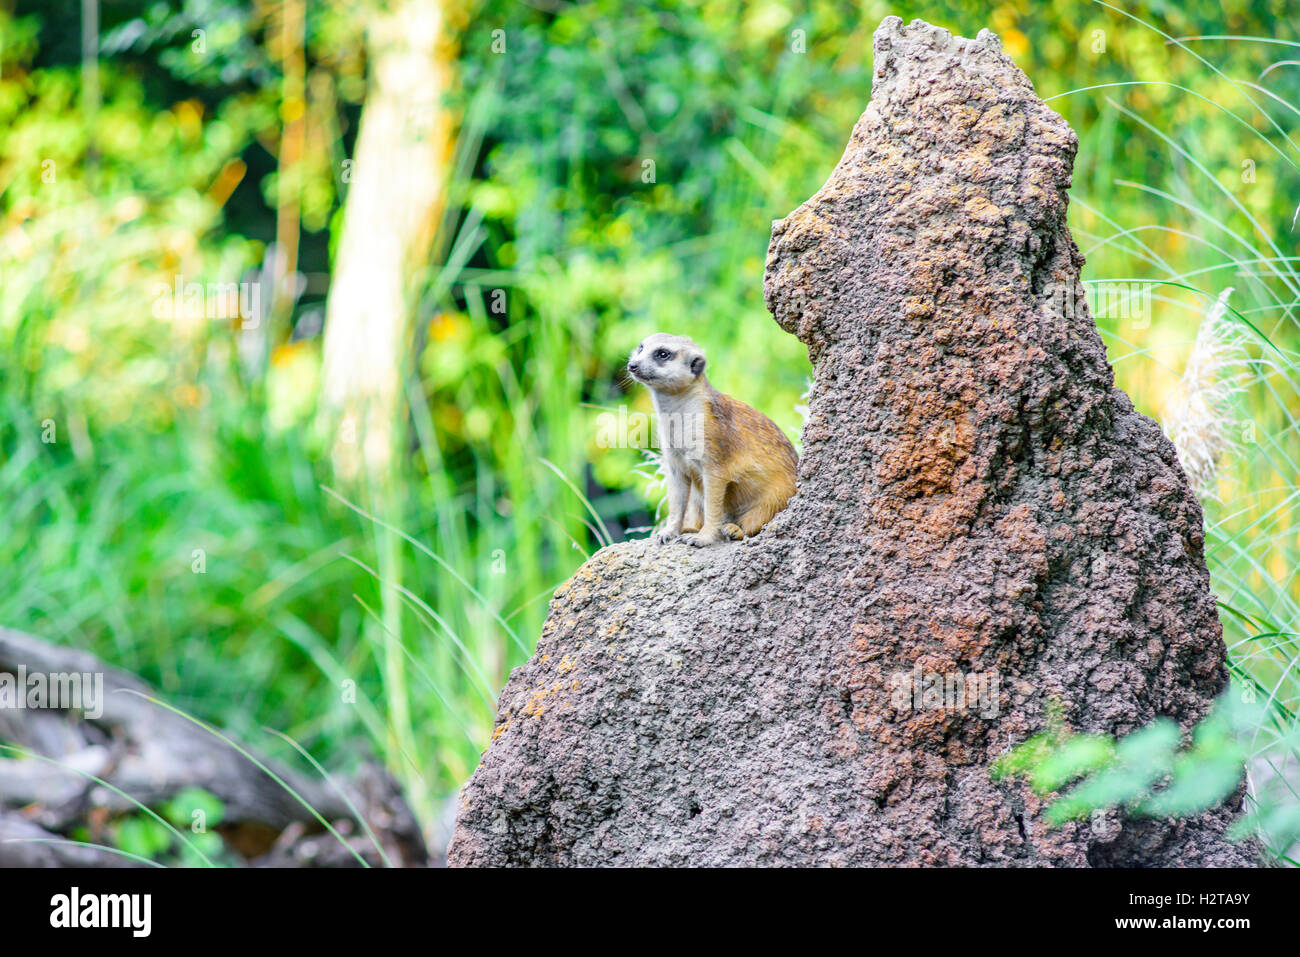 Meerkat at Disney's Animal Kingdom - Stock Image